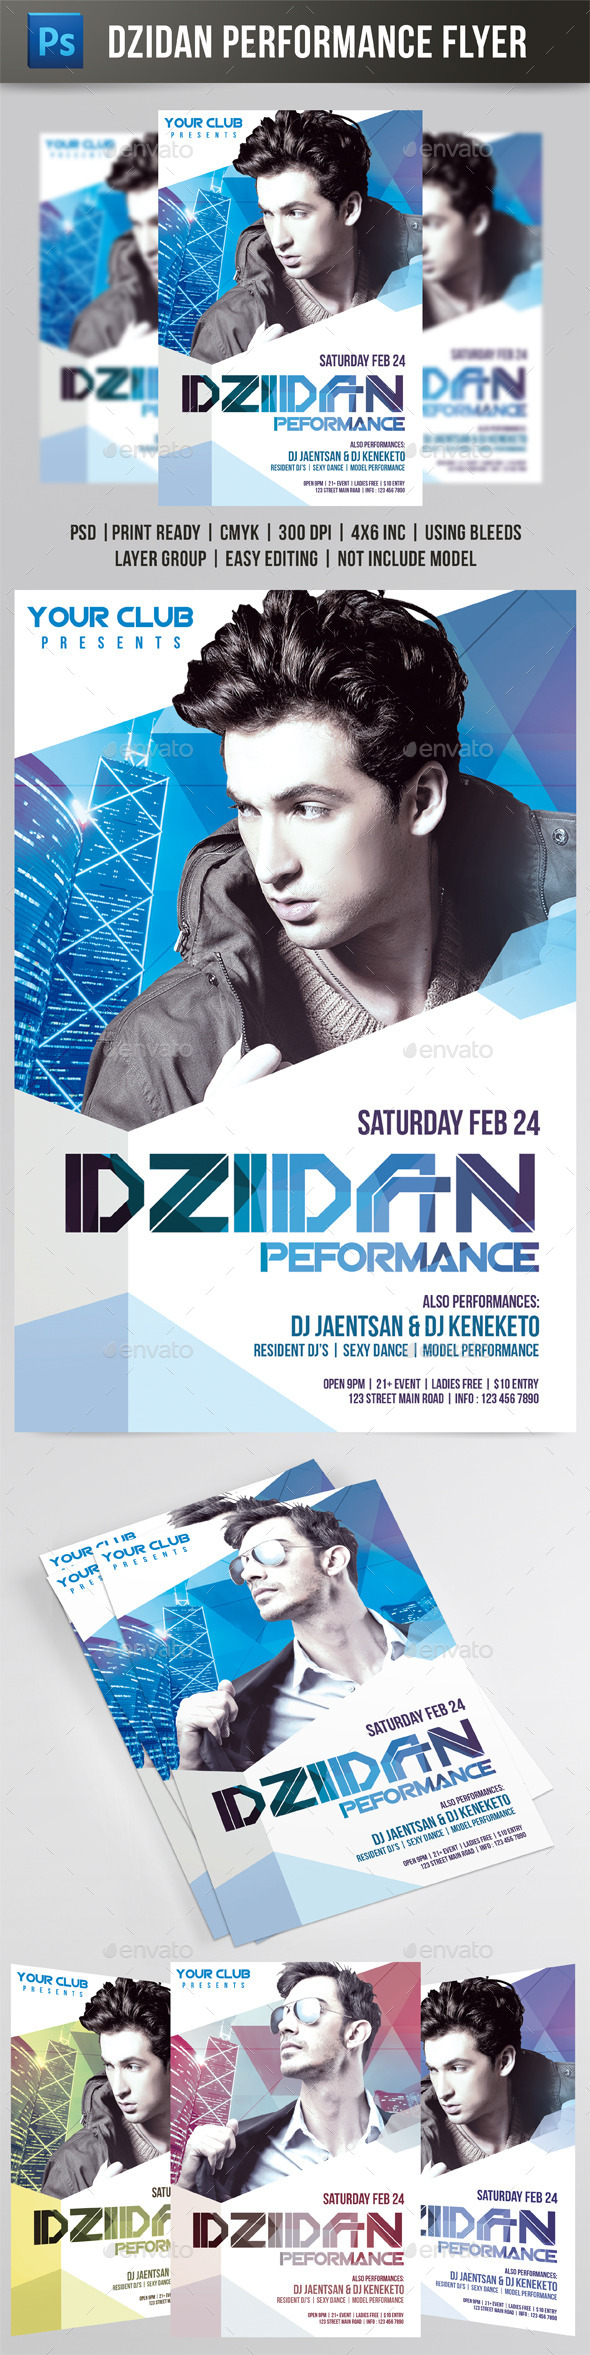 Dzidan Performance Flyer - Events Flyers